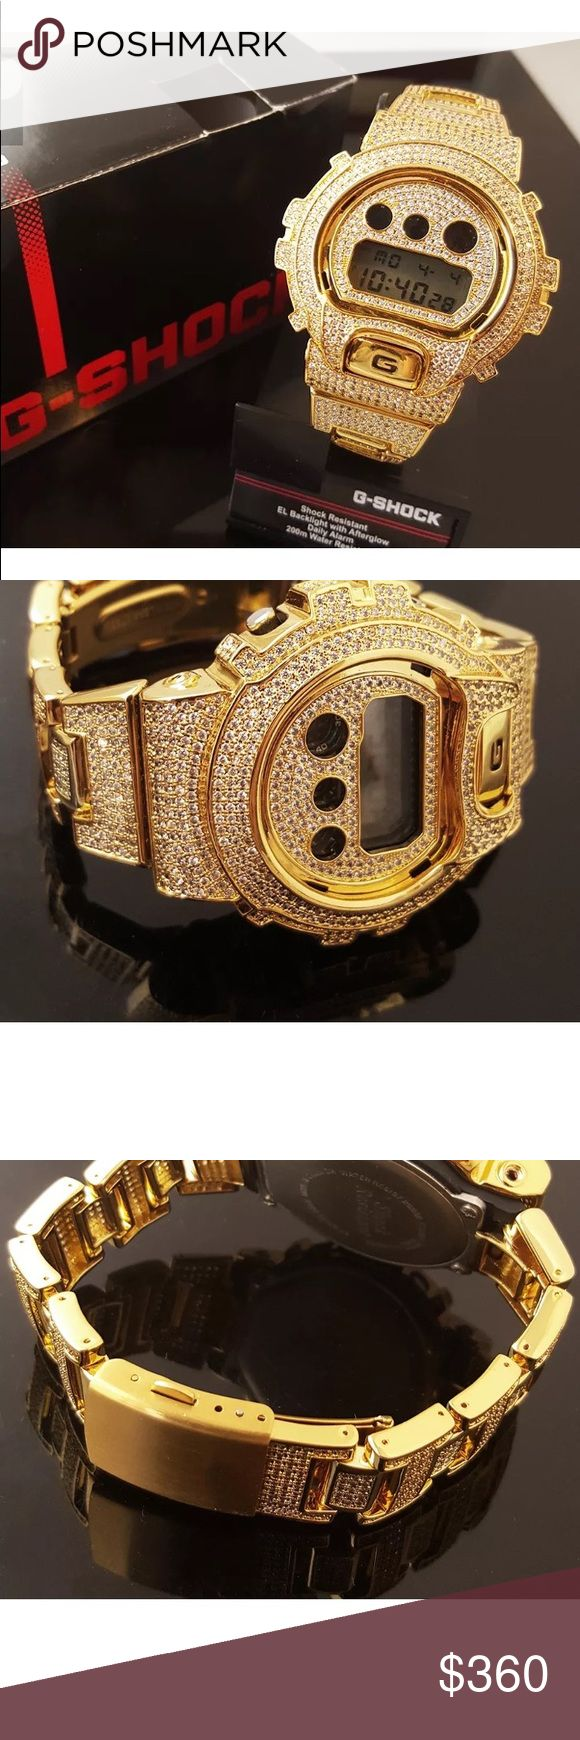 GOLD ICED OUT GSHOCK DIGITAL MENS WATCH HIP HOP NEW CUSTOMIZED, 100% Authentic Fully Iced Out Micro Pave Bezel DW6900  G-Shock Watch.  The original G Shock watch has been customized with a custom bezel and Band - in clear lab simulated diamonds. BRASS CASING - sure to last for a long time - steel doesn't tarnish, scratch or fade color  Model Number: DW6900 Movement: Digital Stone Color: Clear  Total Carat Weight: 4.00 ct look Case Size: 53.2 x 50 x 16.3mm Genuine Authentic G Shock Box and…